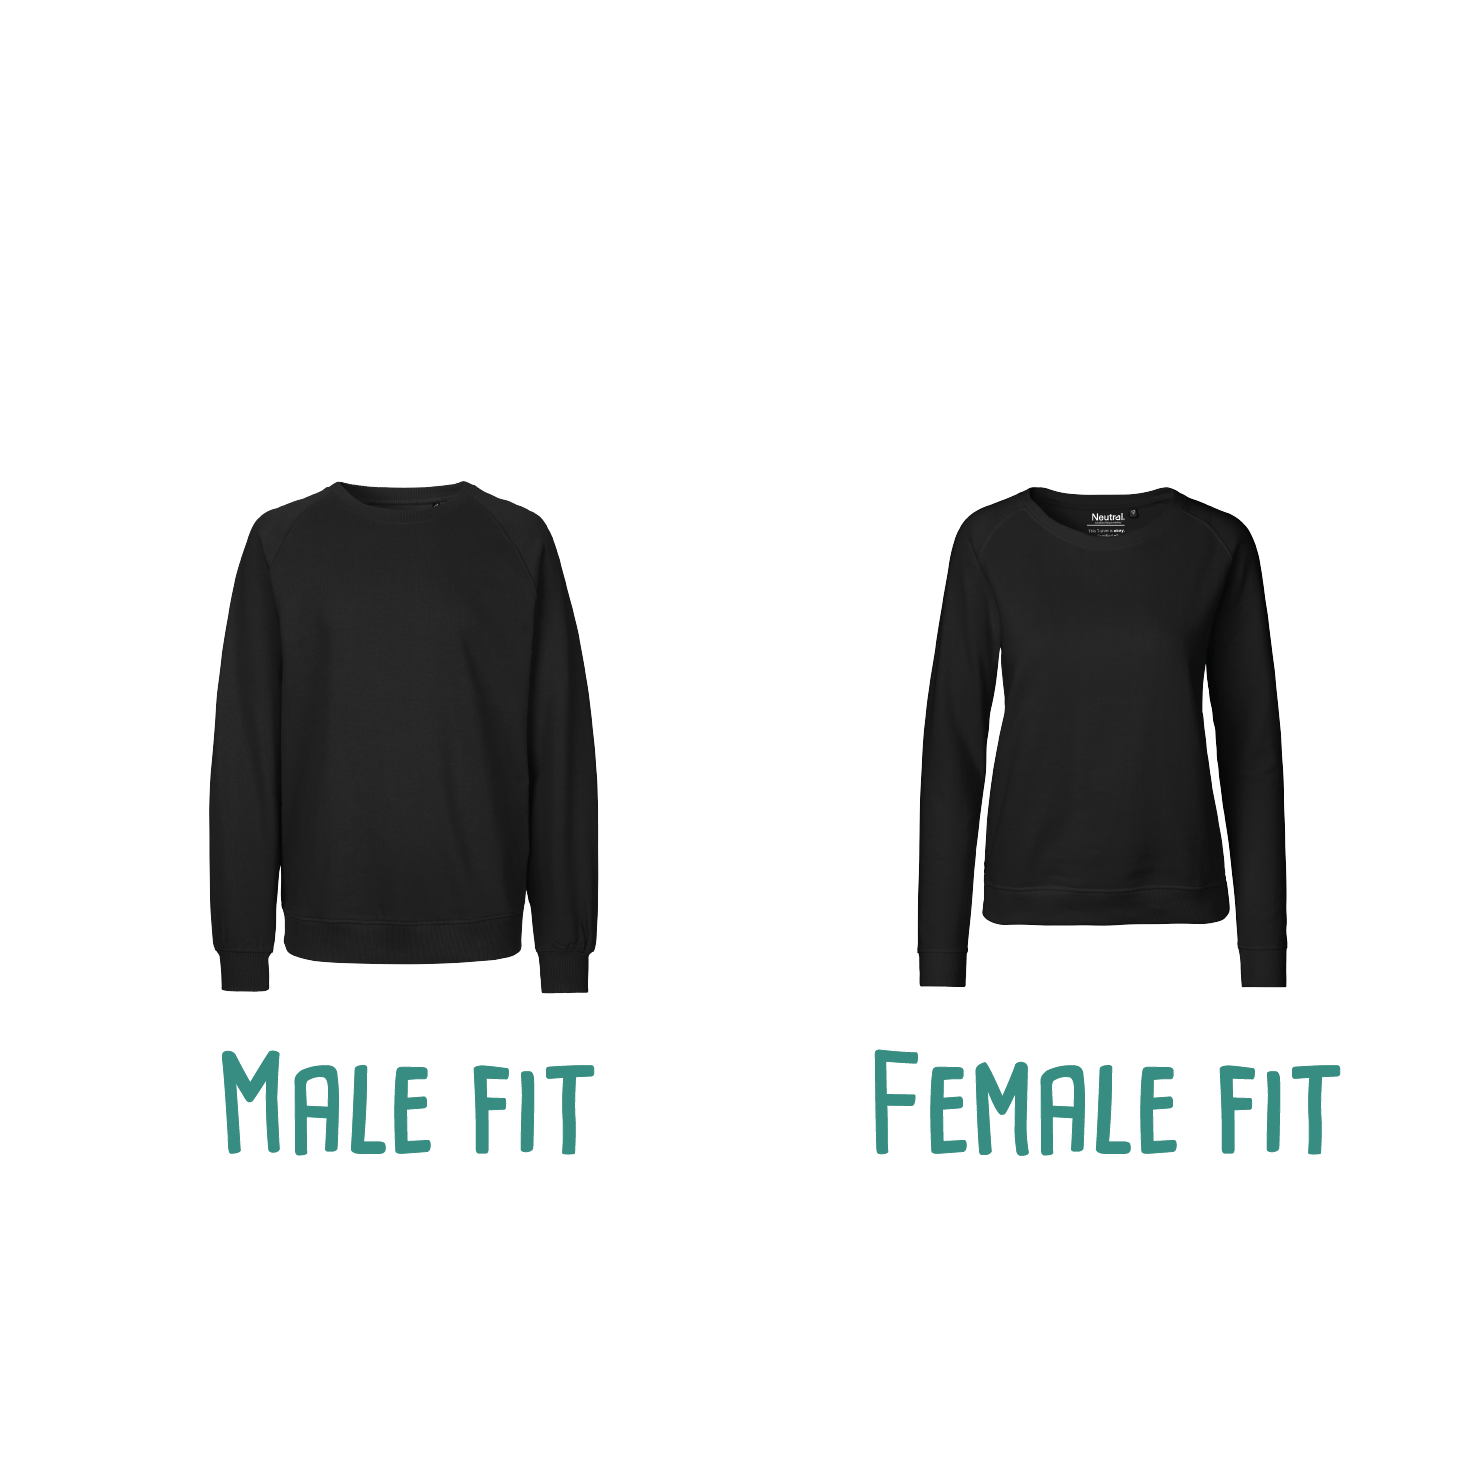 Difference between male or female fit of adult sweaters by KMLeon.